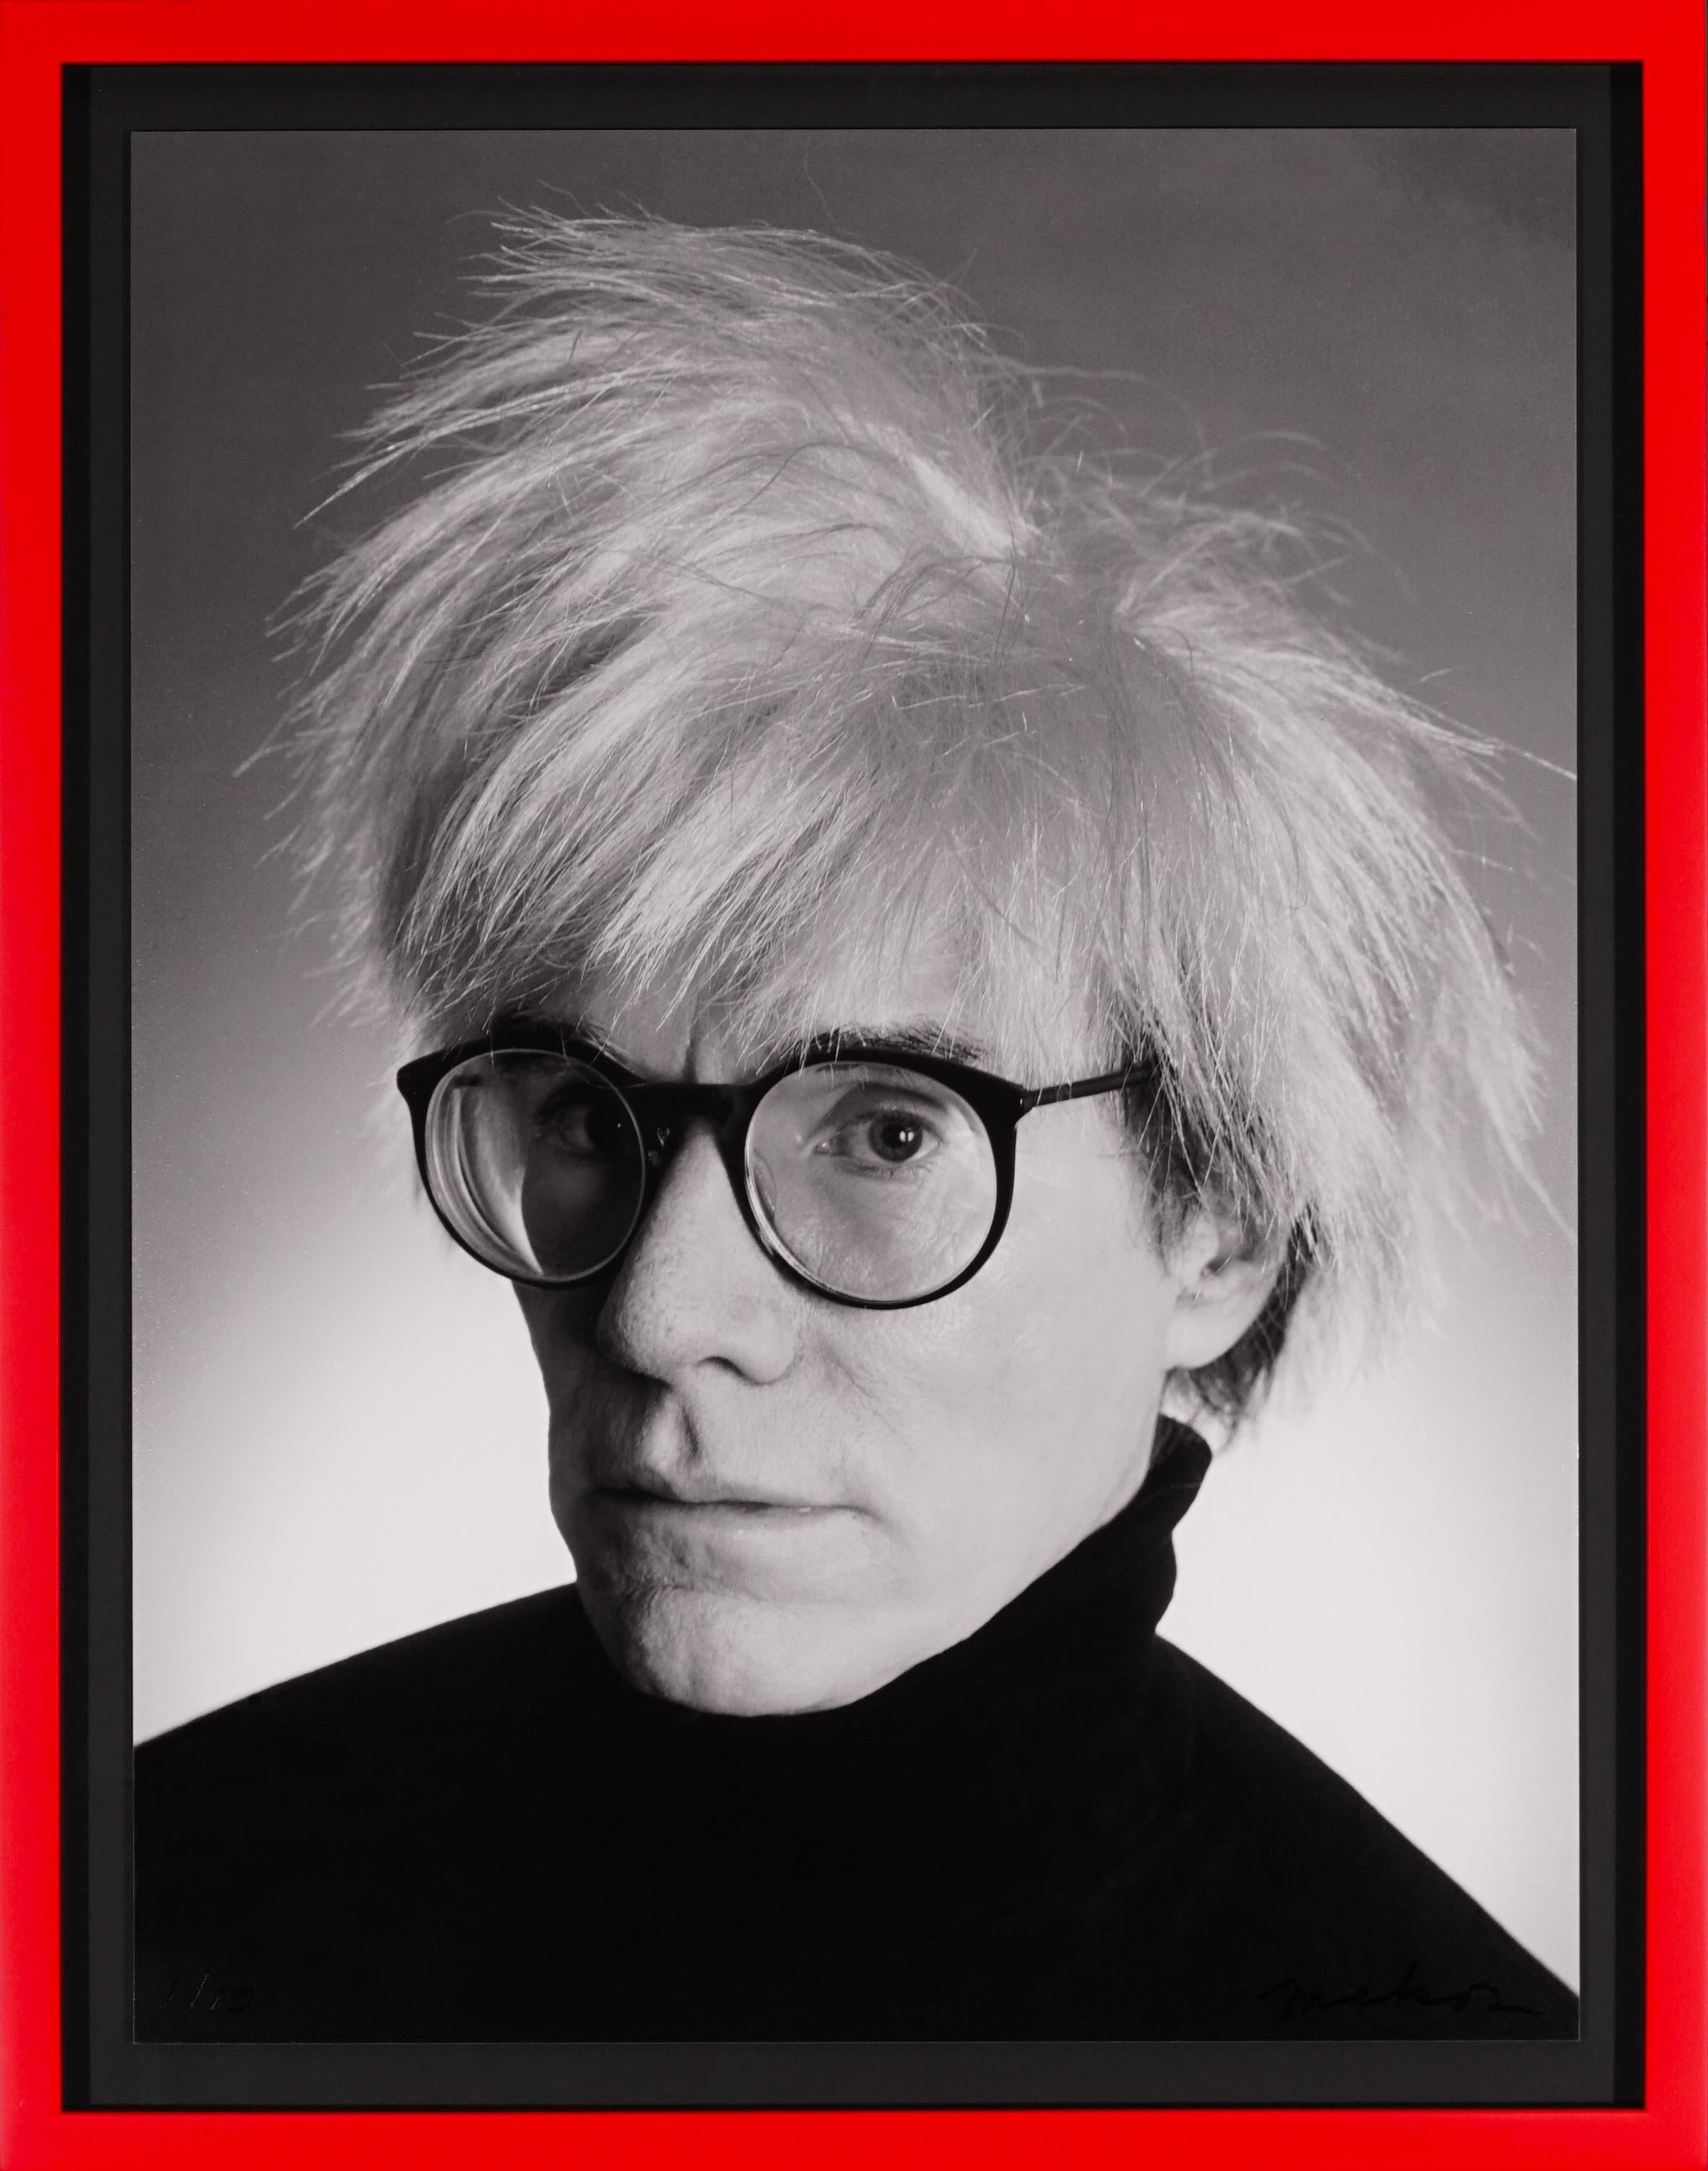 Archival 'Andy Warhol Portrait', Black and White, 1982/2020